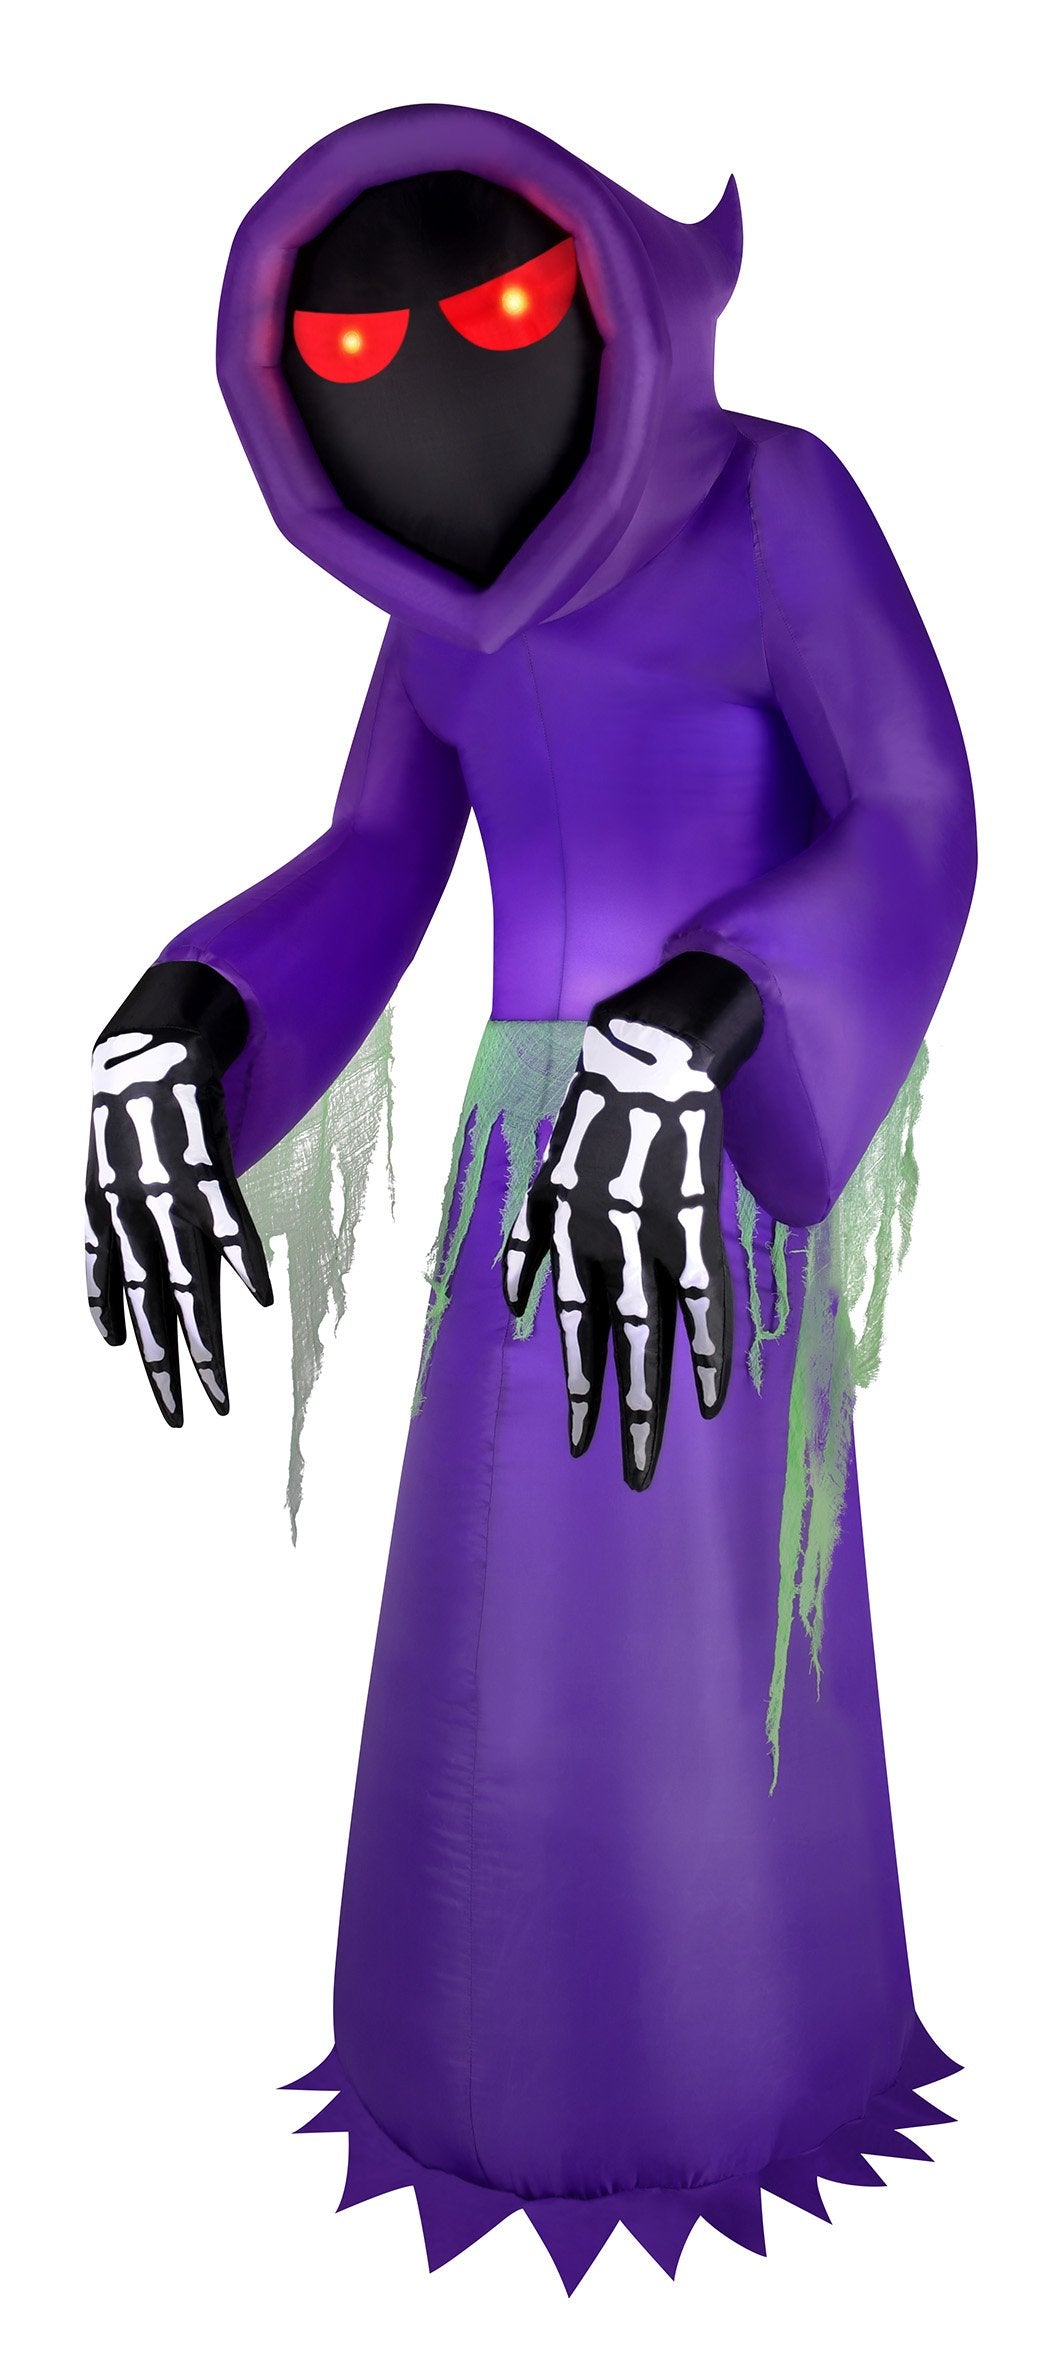 7' Inflatable Faceless Reaper - Purple